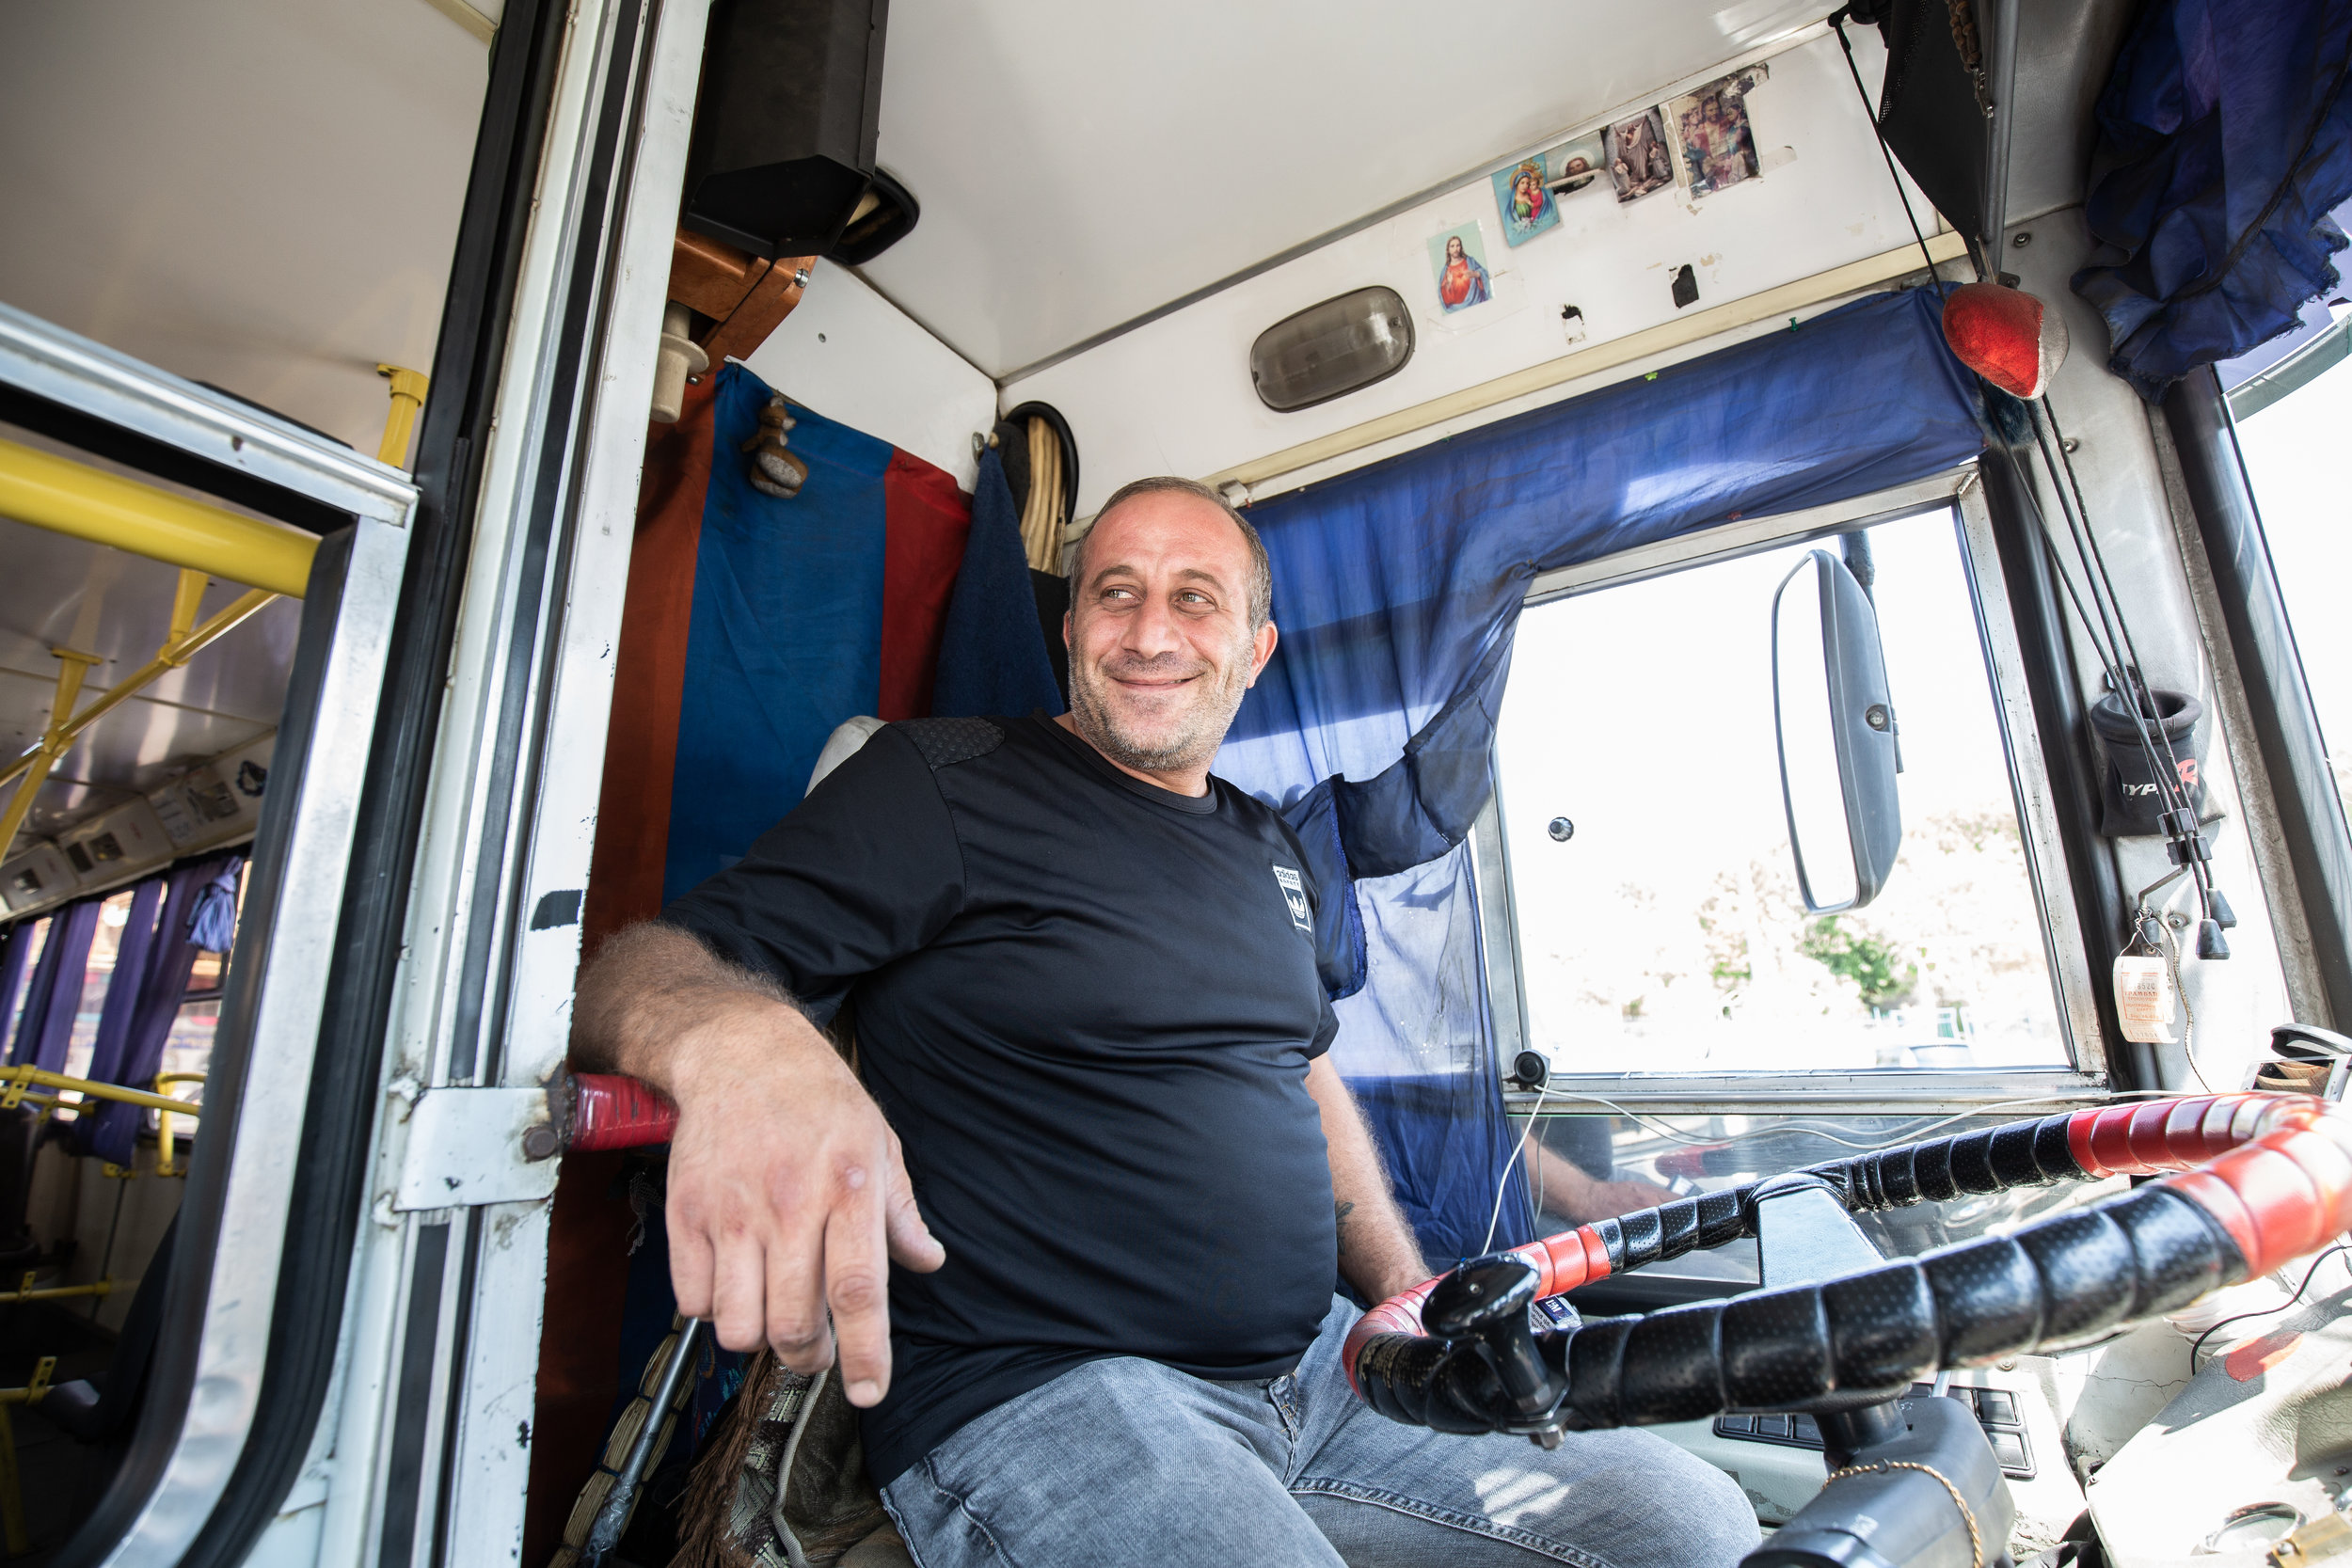 Many of the drivers are working just to take care of their families however there are some who are working just for fun and extra money and enjoy their job and proud to be a trolleybus driver. The drivers and passengers would like to see an increase in new routes for their trolleybuses, less taxis, and Marshrutkas eventually phased out and not used anymore.